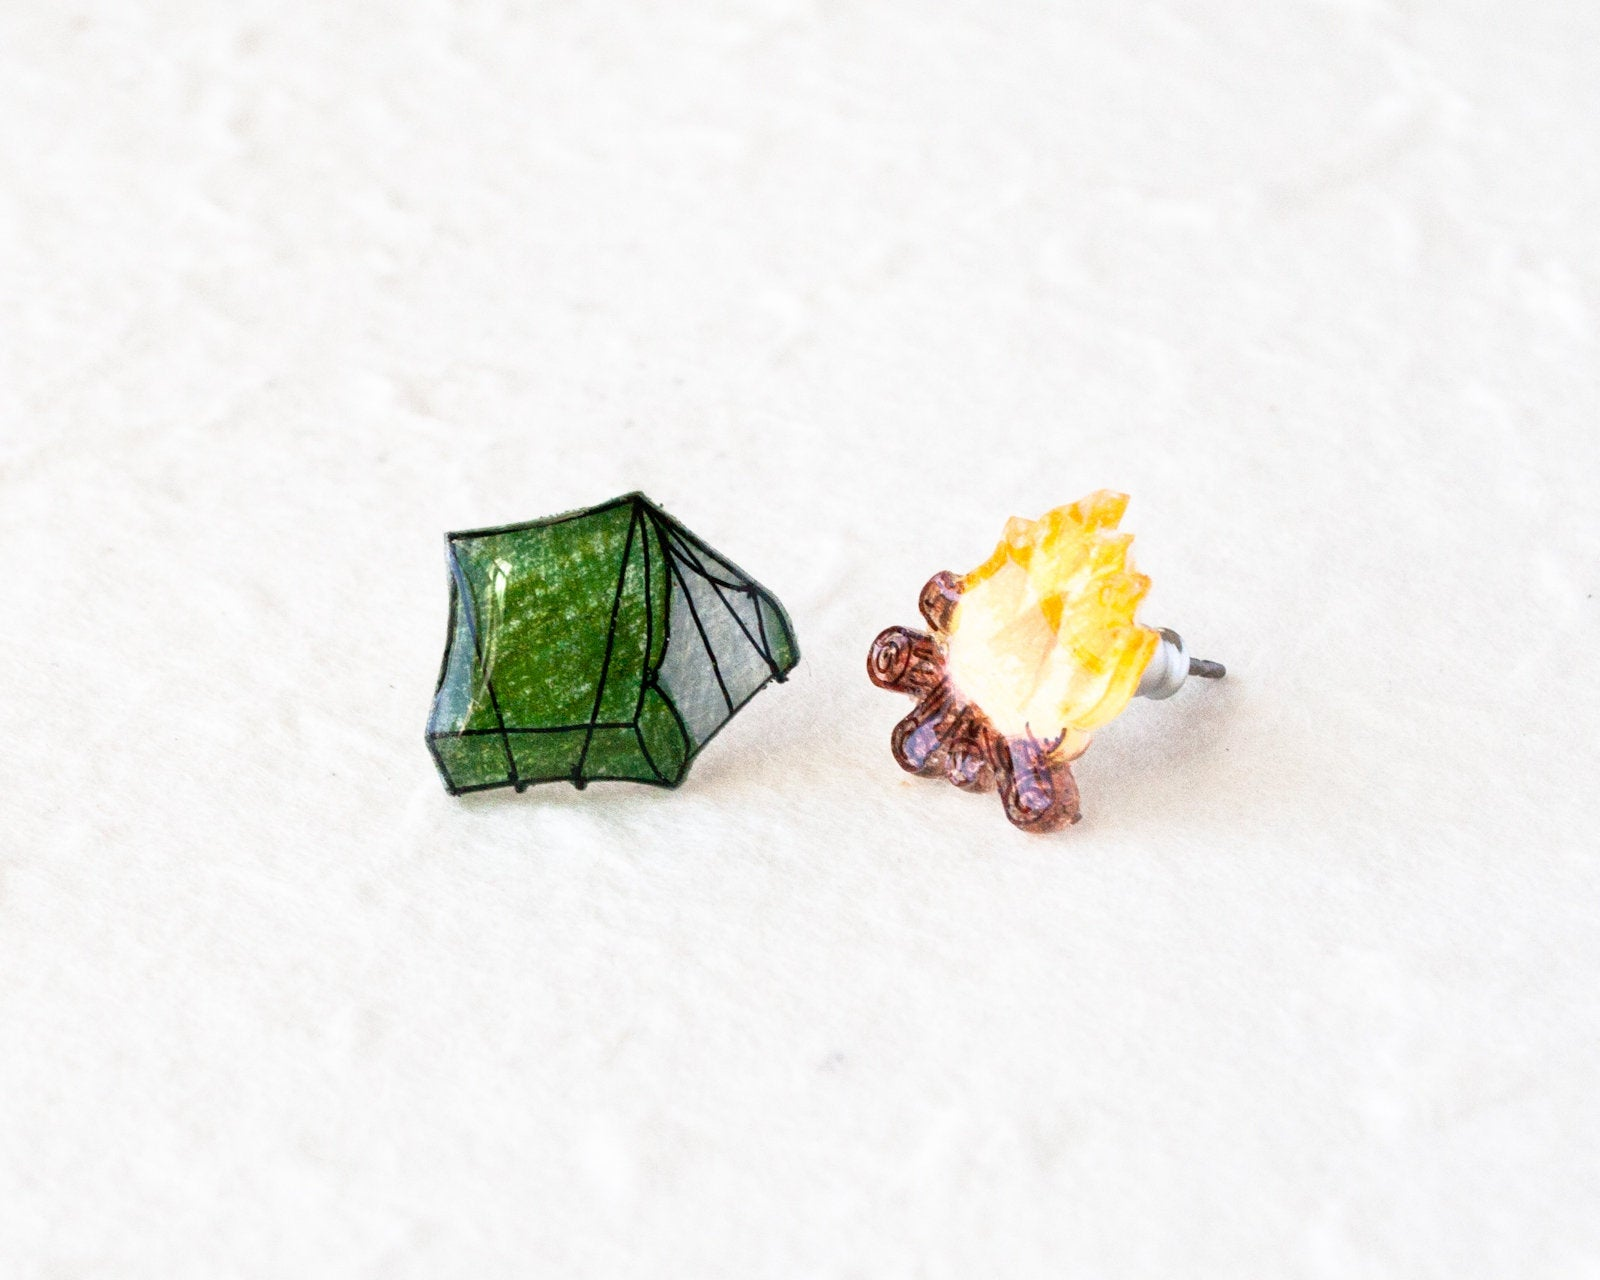 Tent and Campfire Camping Stud Earring Set